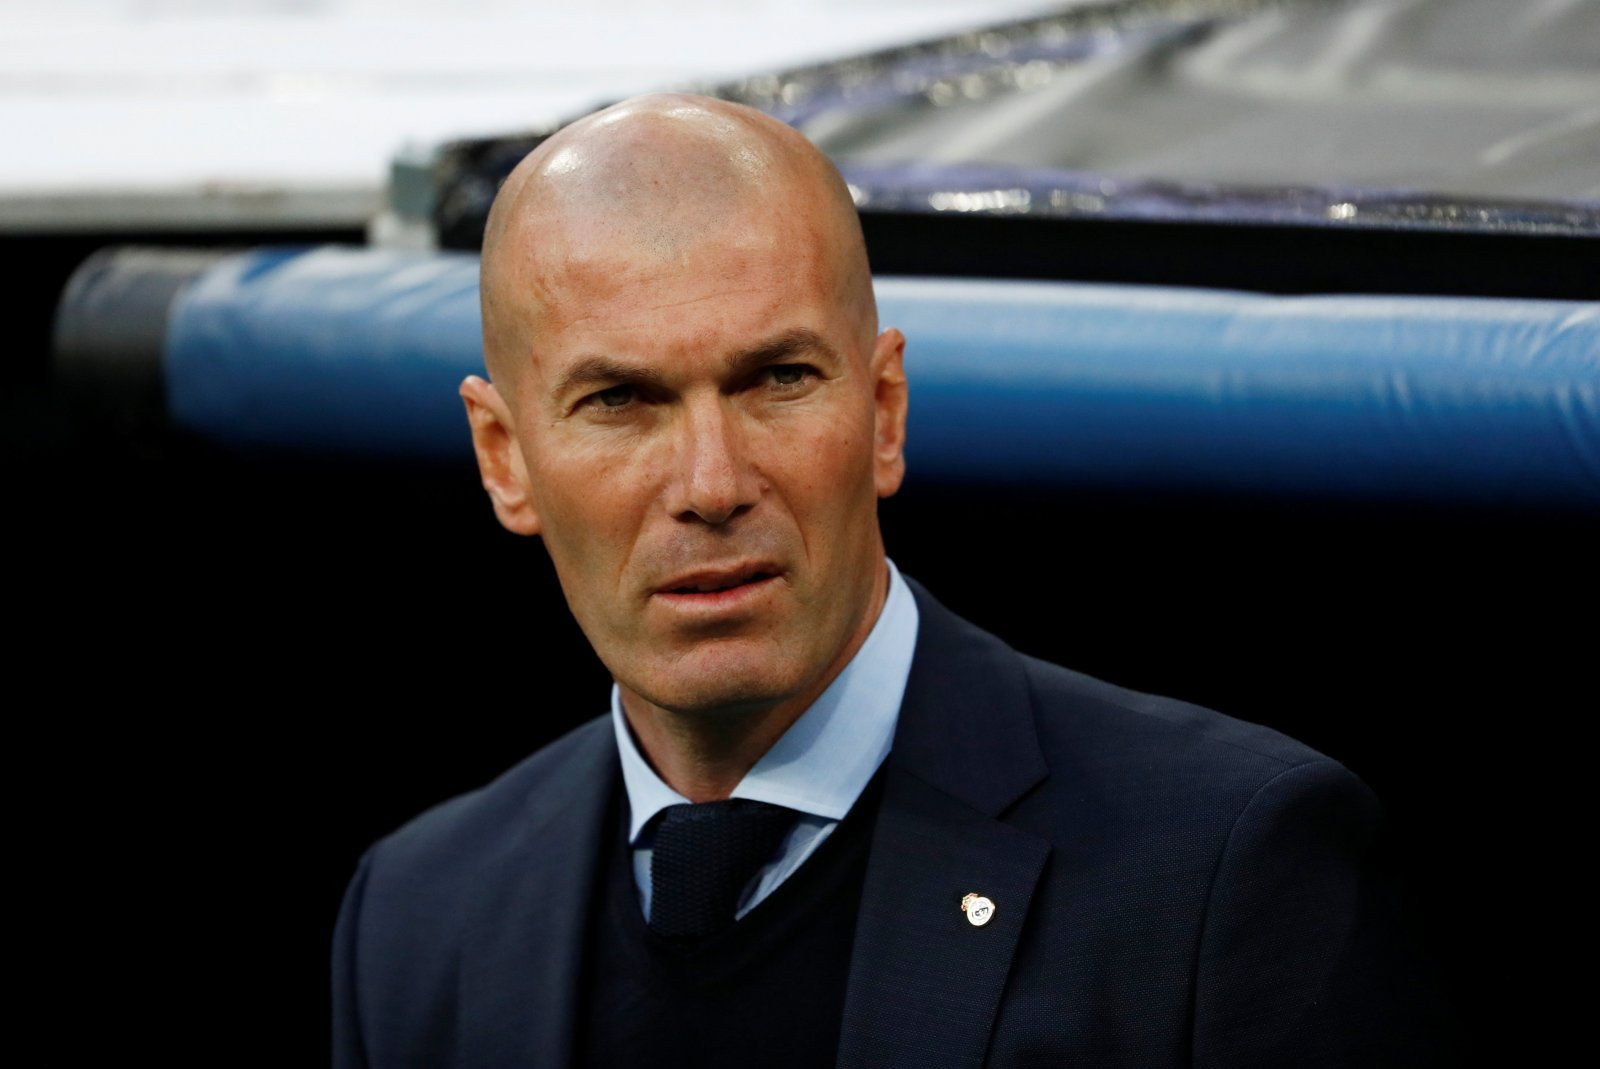 Real Madrid: Many fans want to see Zinedine Zidane sacked